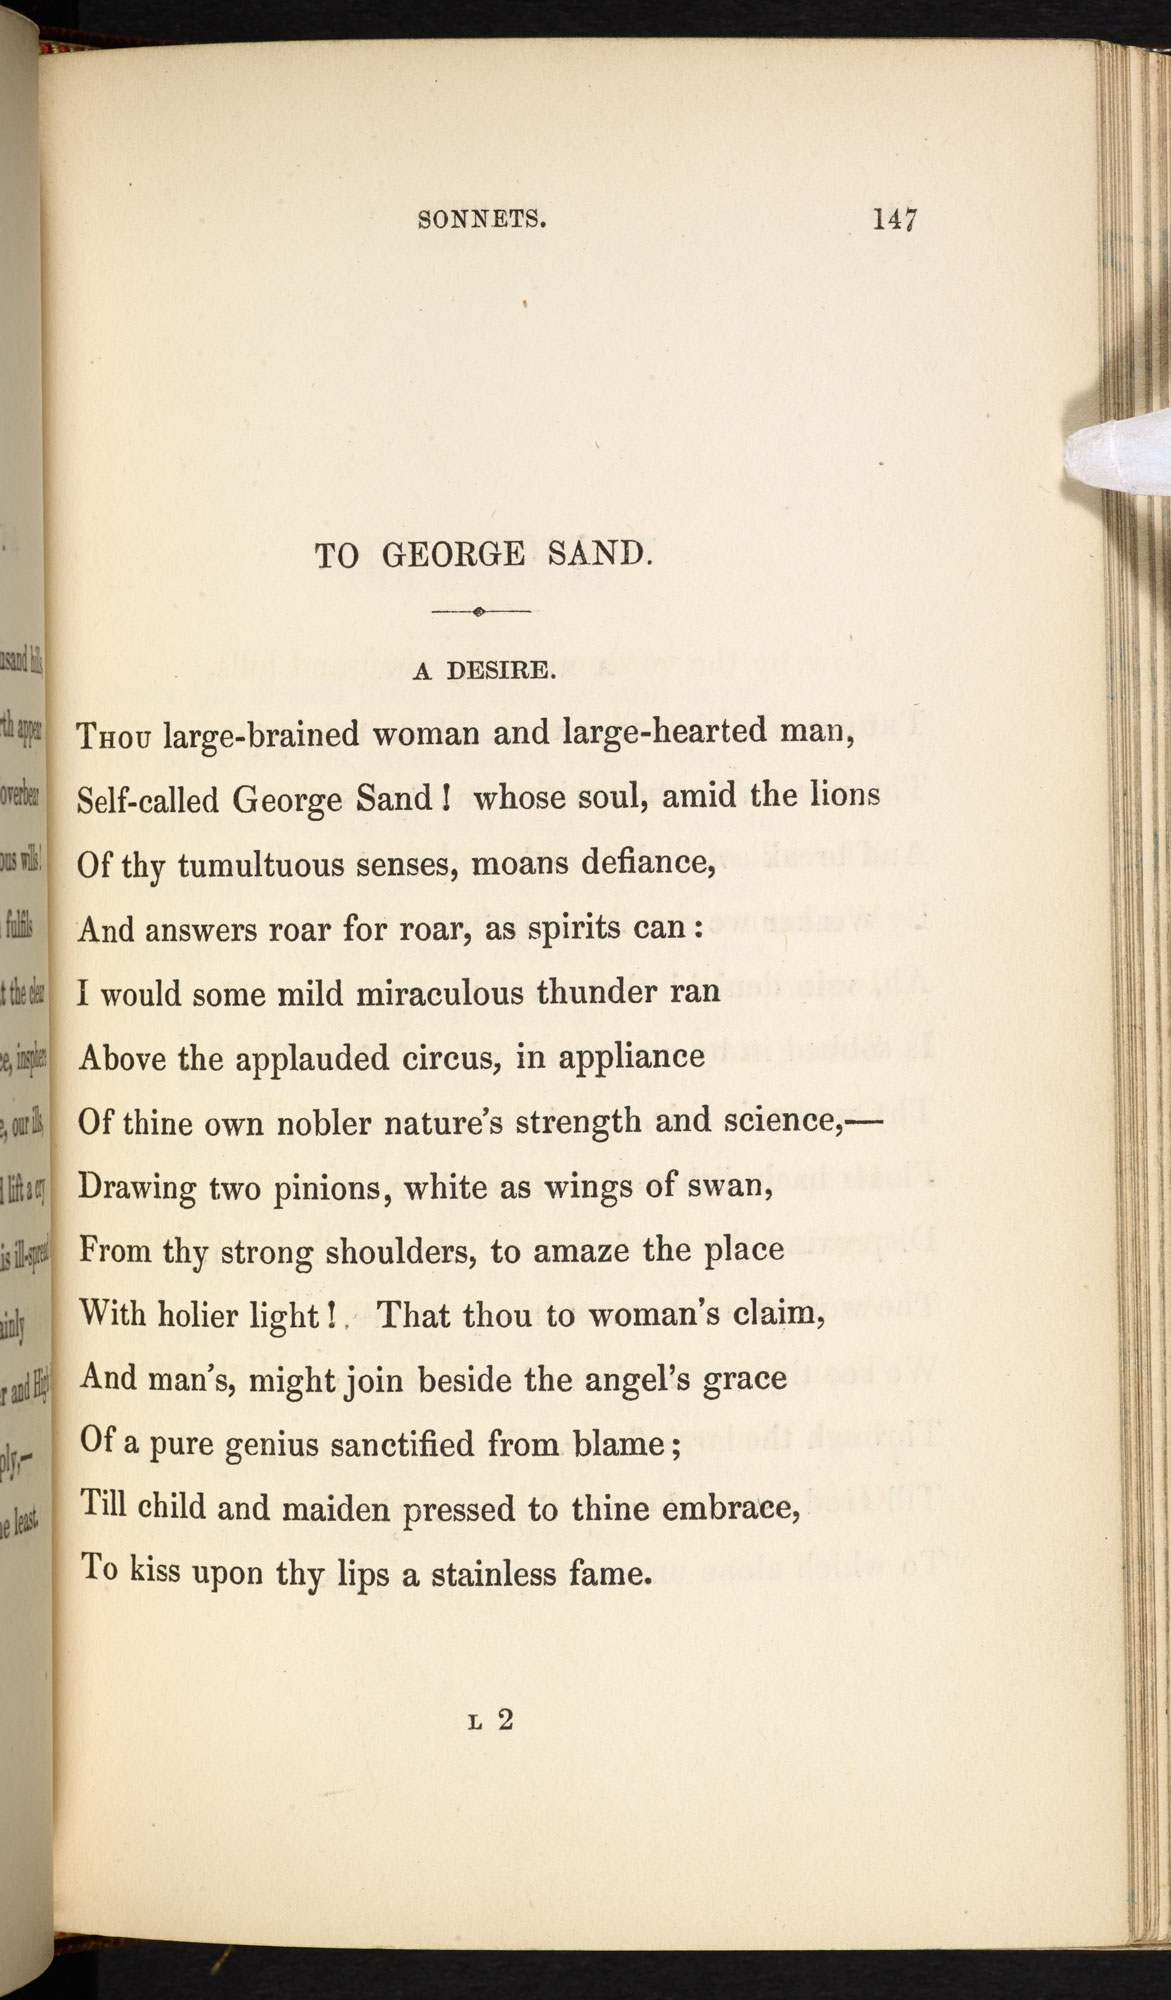 Elizabeth Barrett Browning's Poems, in Two Volumes, 1844 [page: vol. I p. 147]